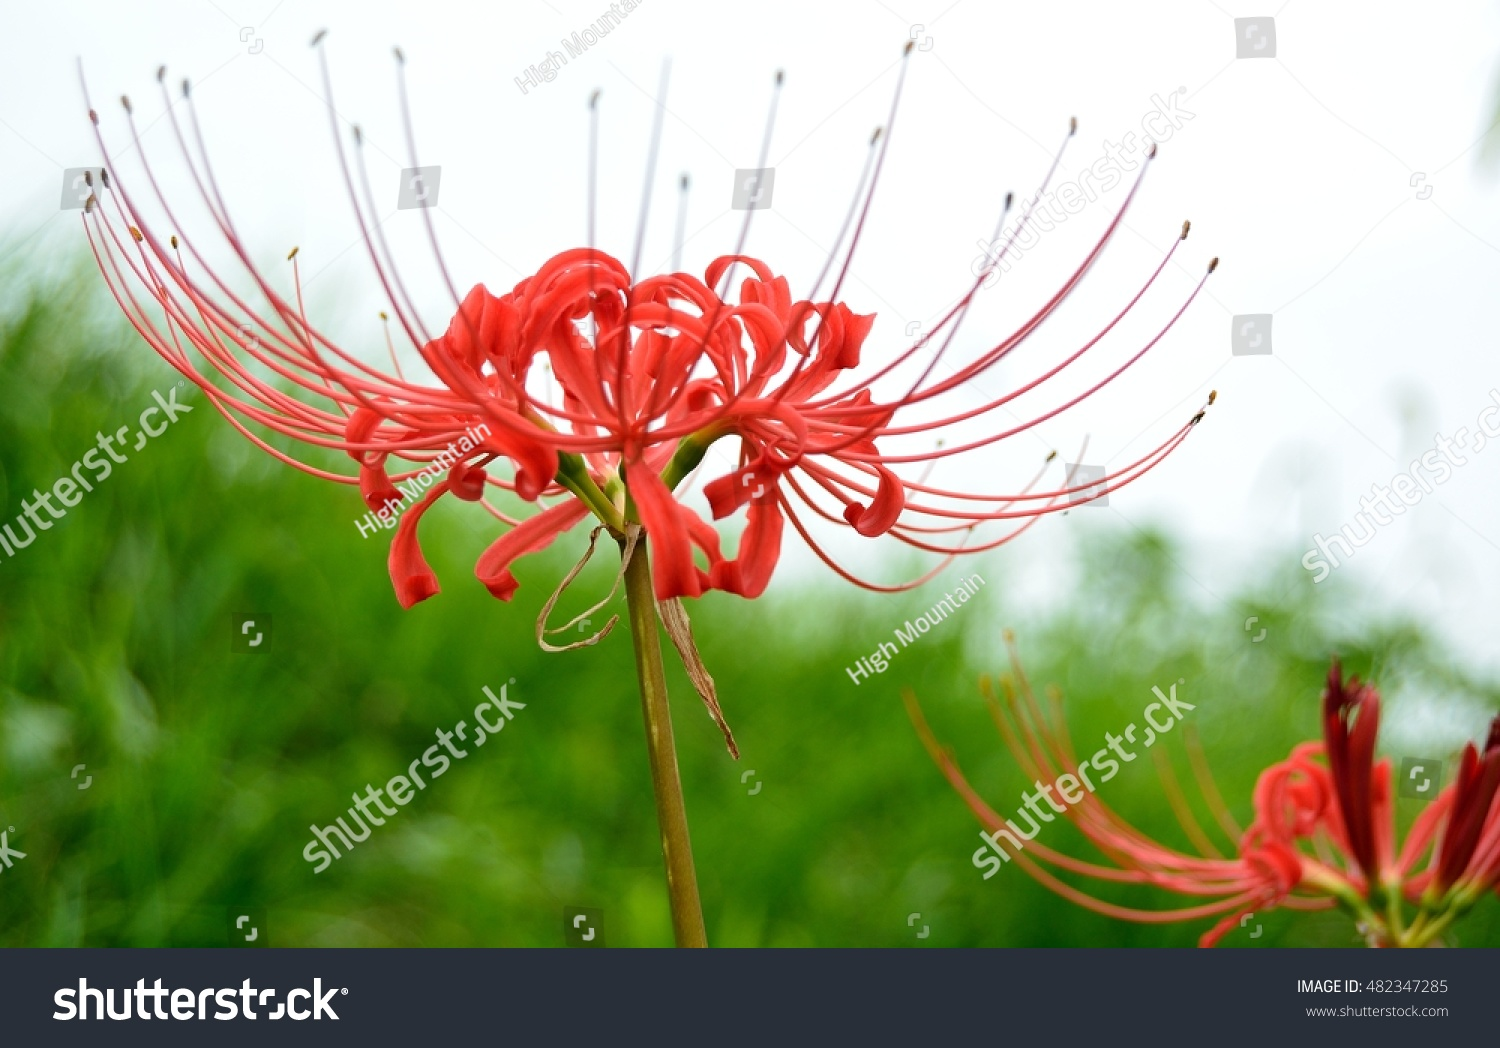 Bewitching flower red spider lily lycoris stock photo edit now bewitching flower of red spider lily or lycoris radiata higanbana in japanese in early izmirmasajfo